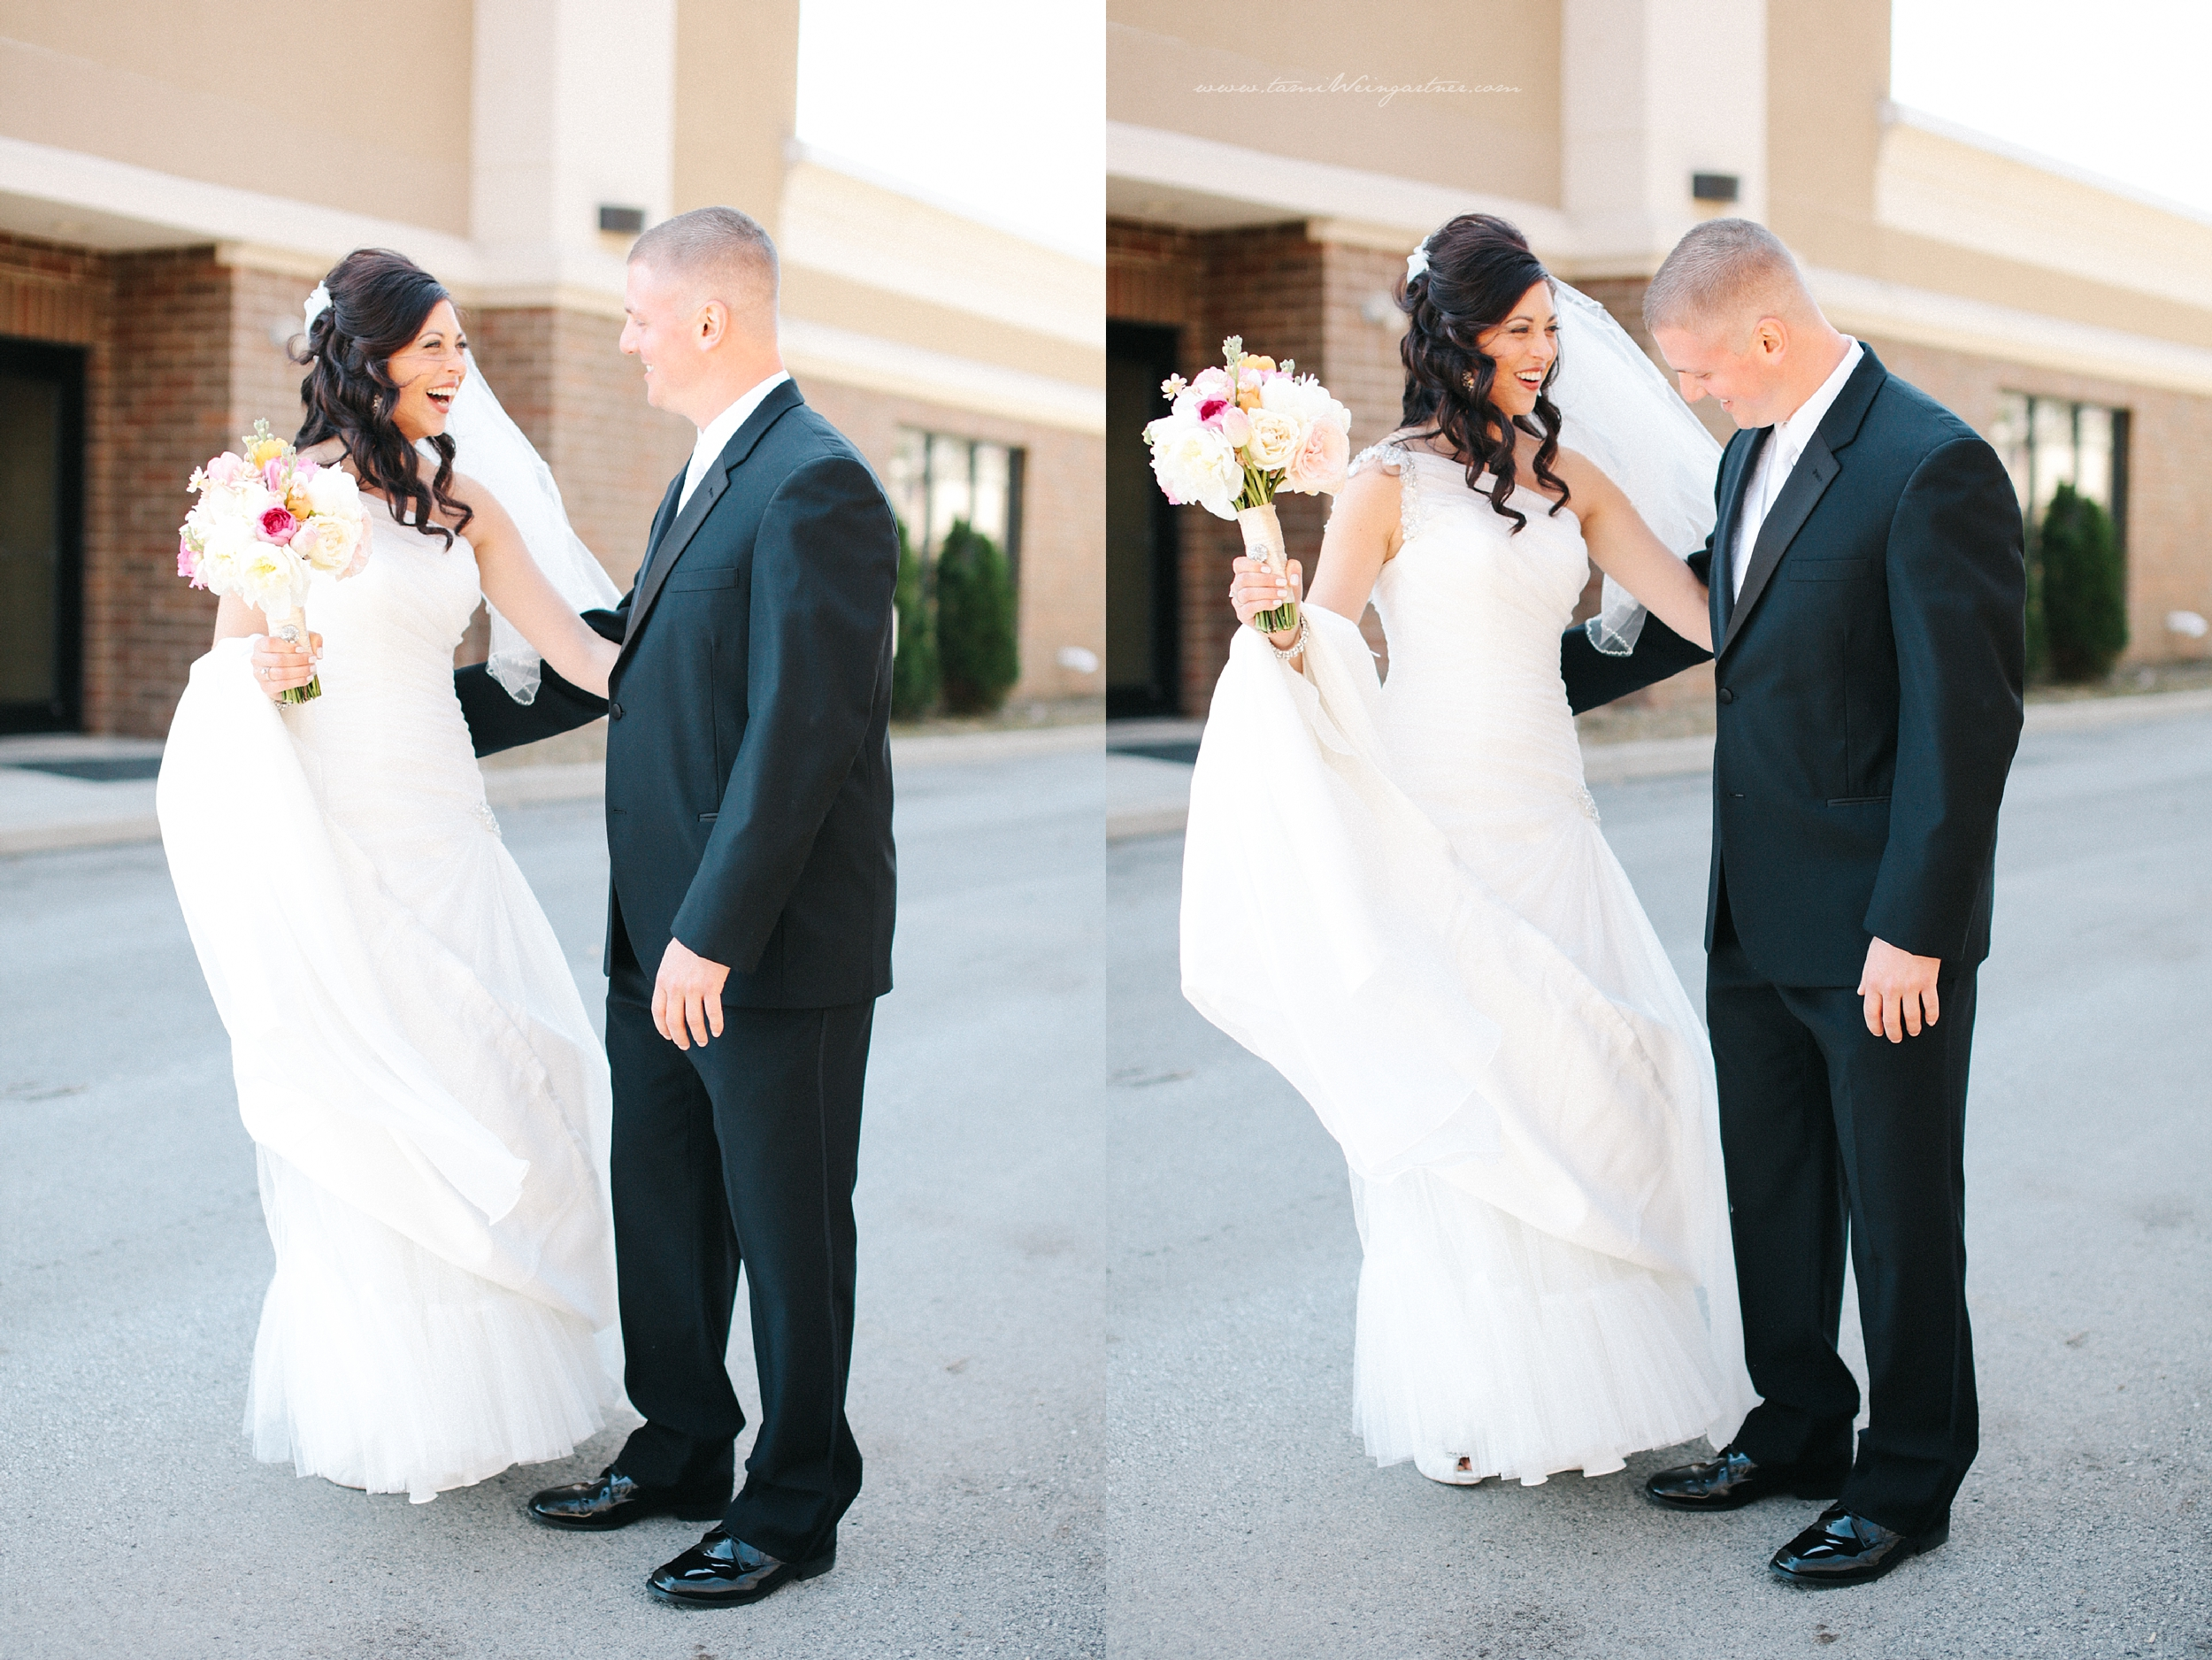 Priceless expressions for bride and groom getting a first look at each other